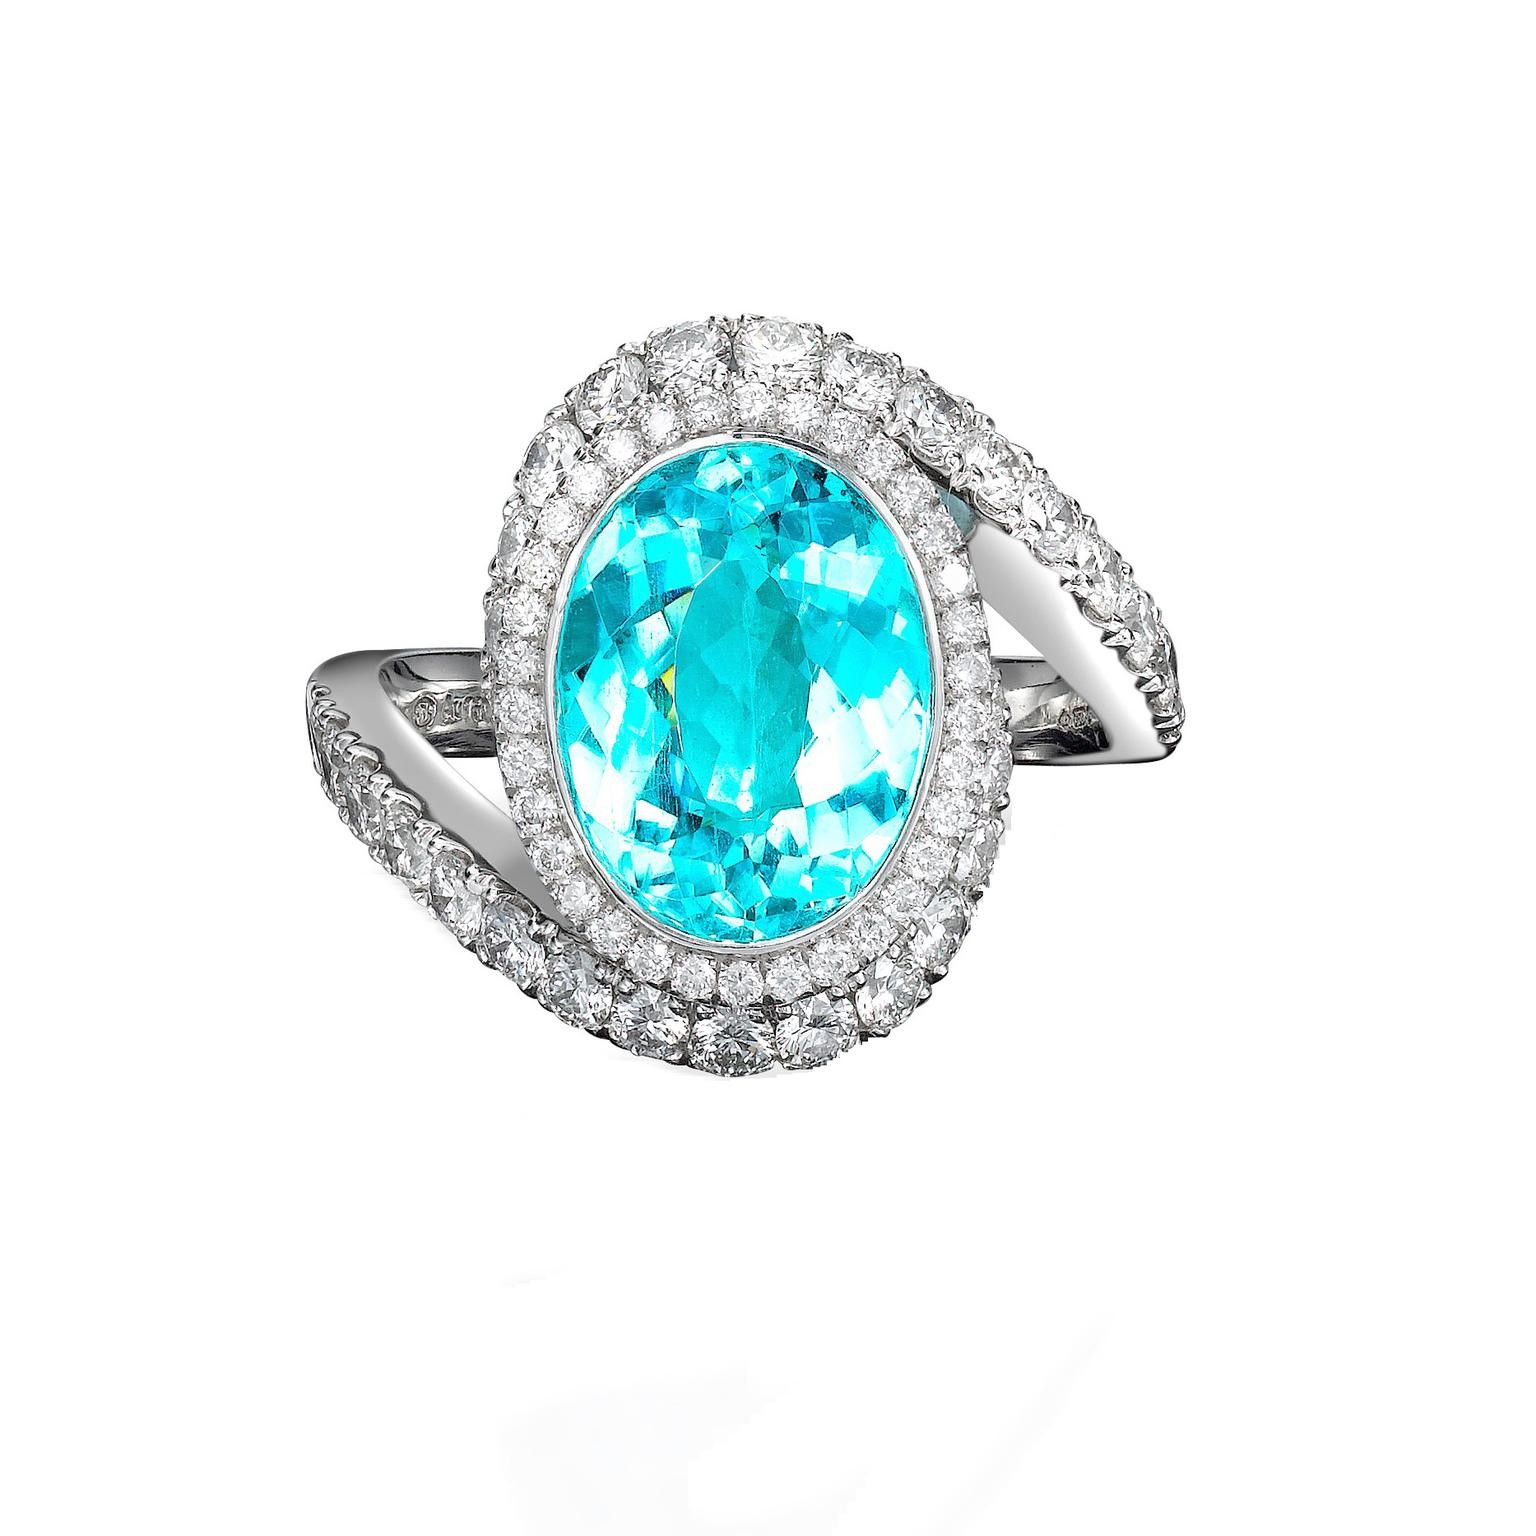 Paraiba Tourmaline Ring George Pragnell The Jewellery